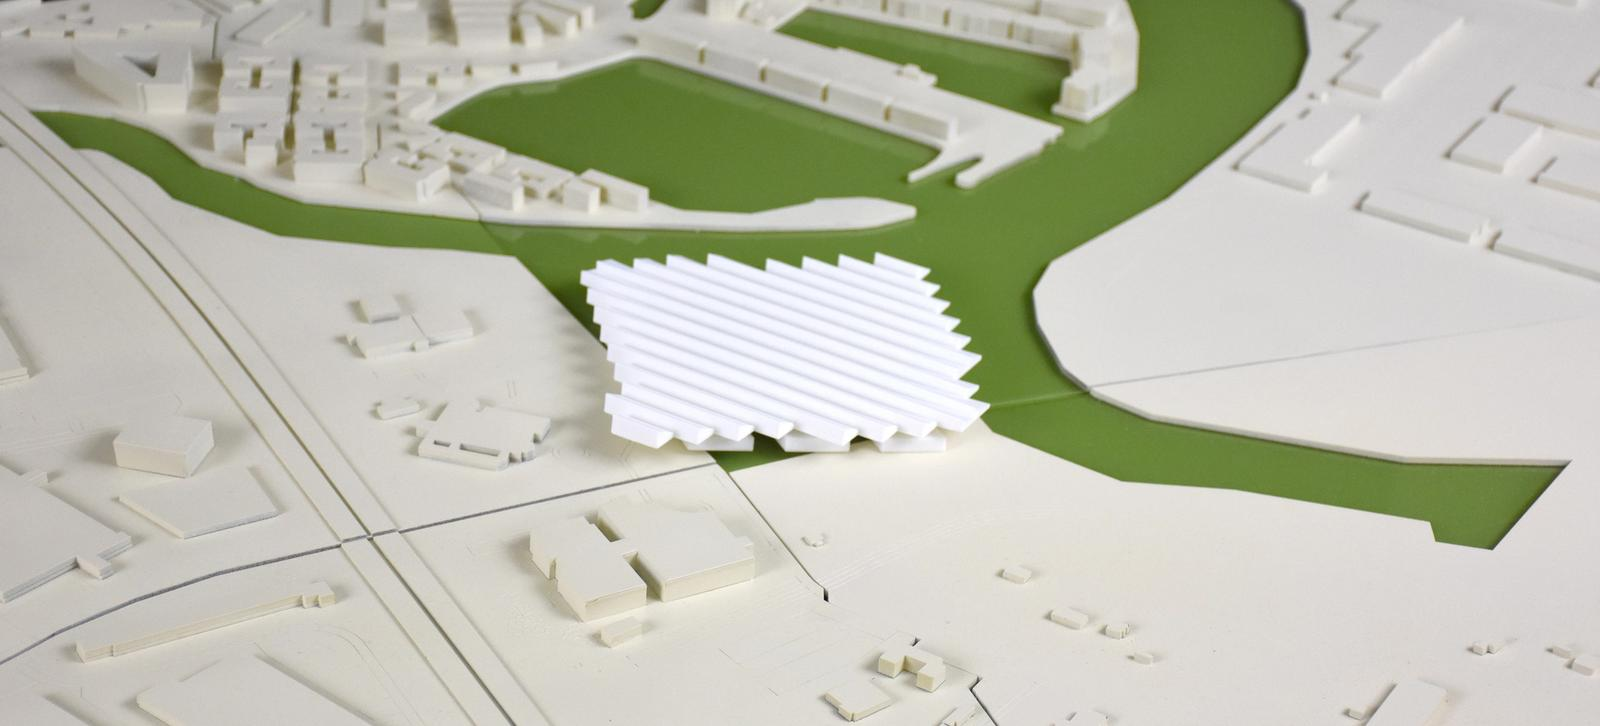 Site Model with Ferry Terminal